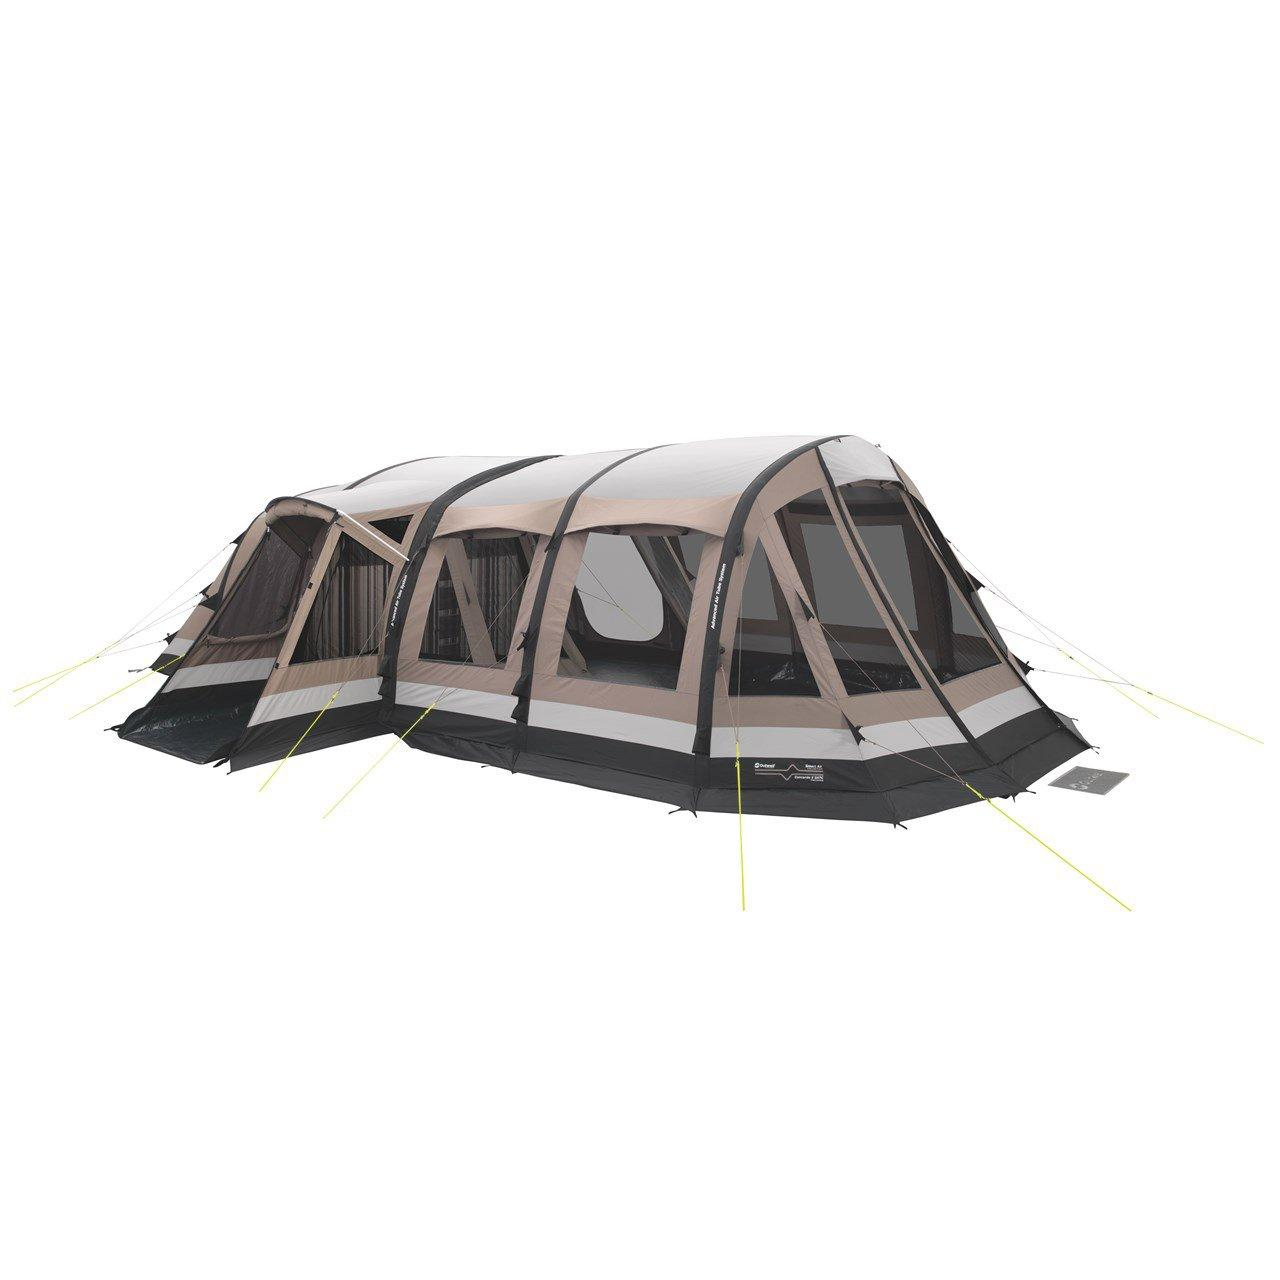 OUTWELL Concorde 5 SATC Awning  sc 1 st  Blacks & OUTWELL Concorde 5 SATC Awning | Blacks